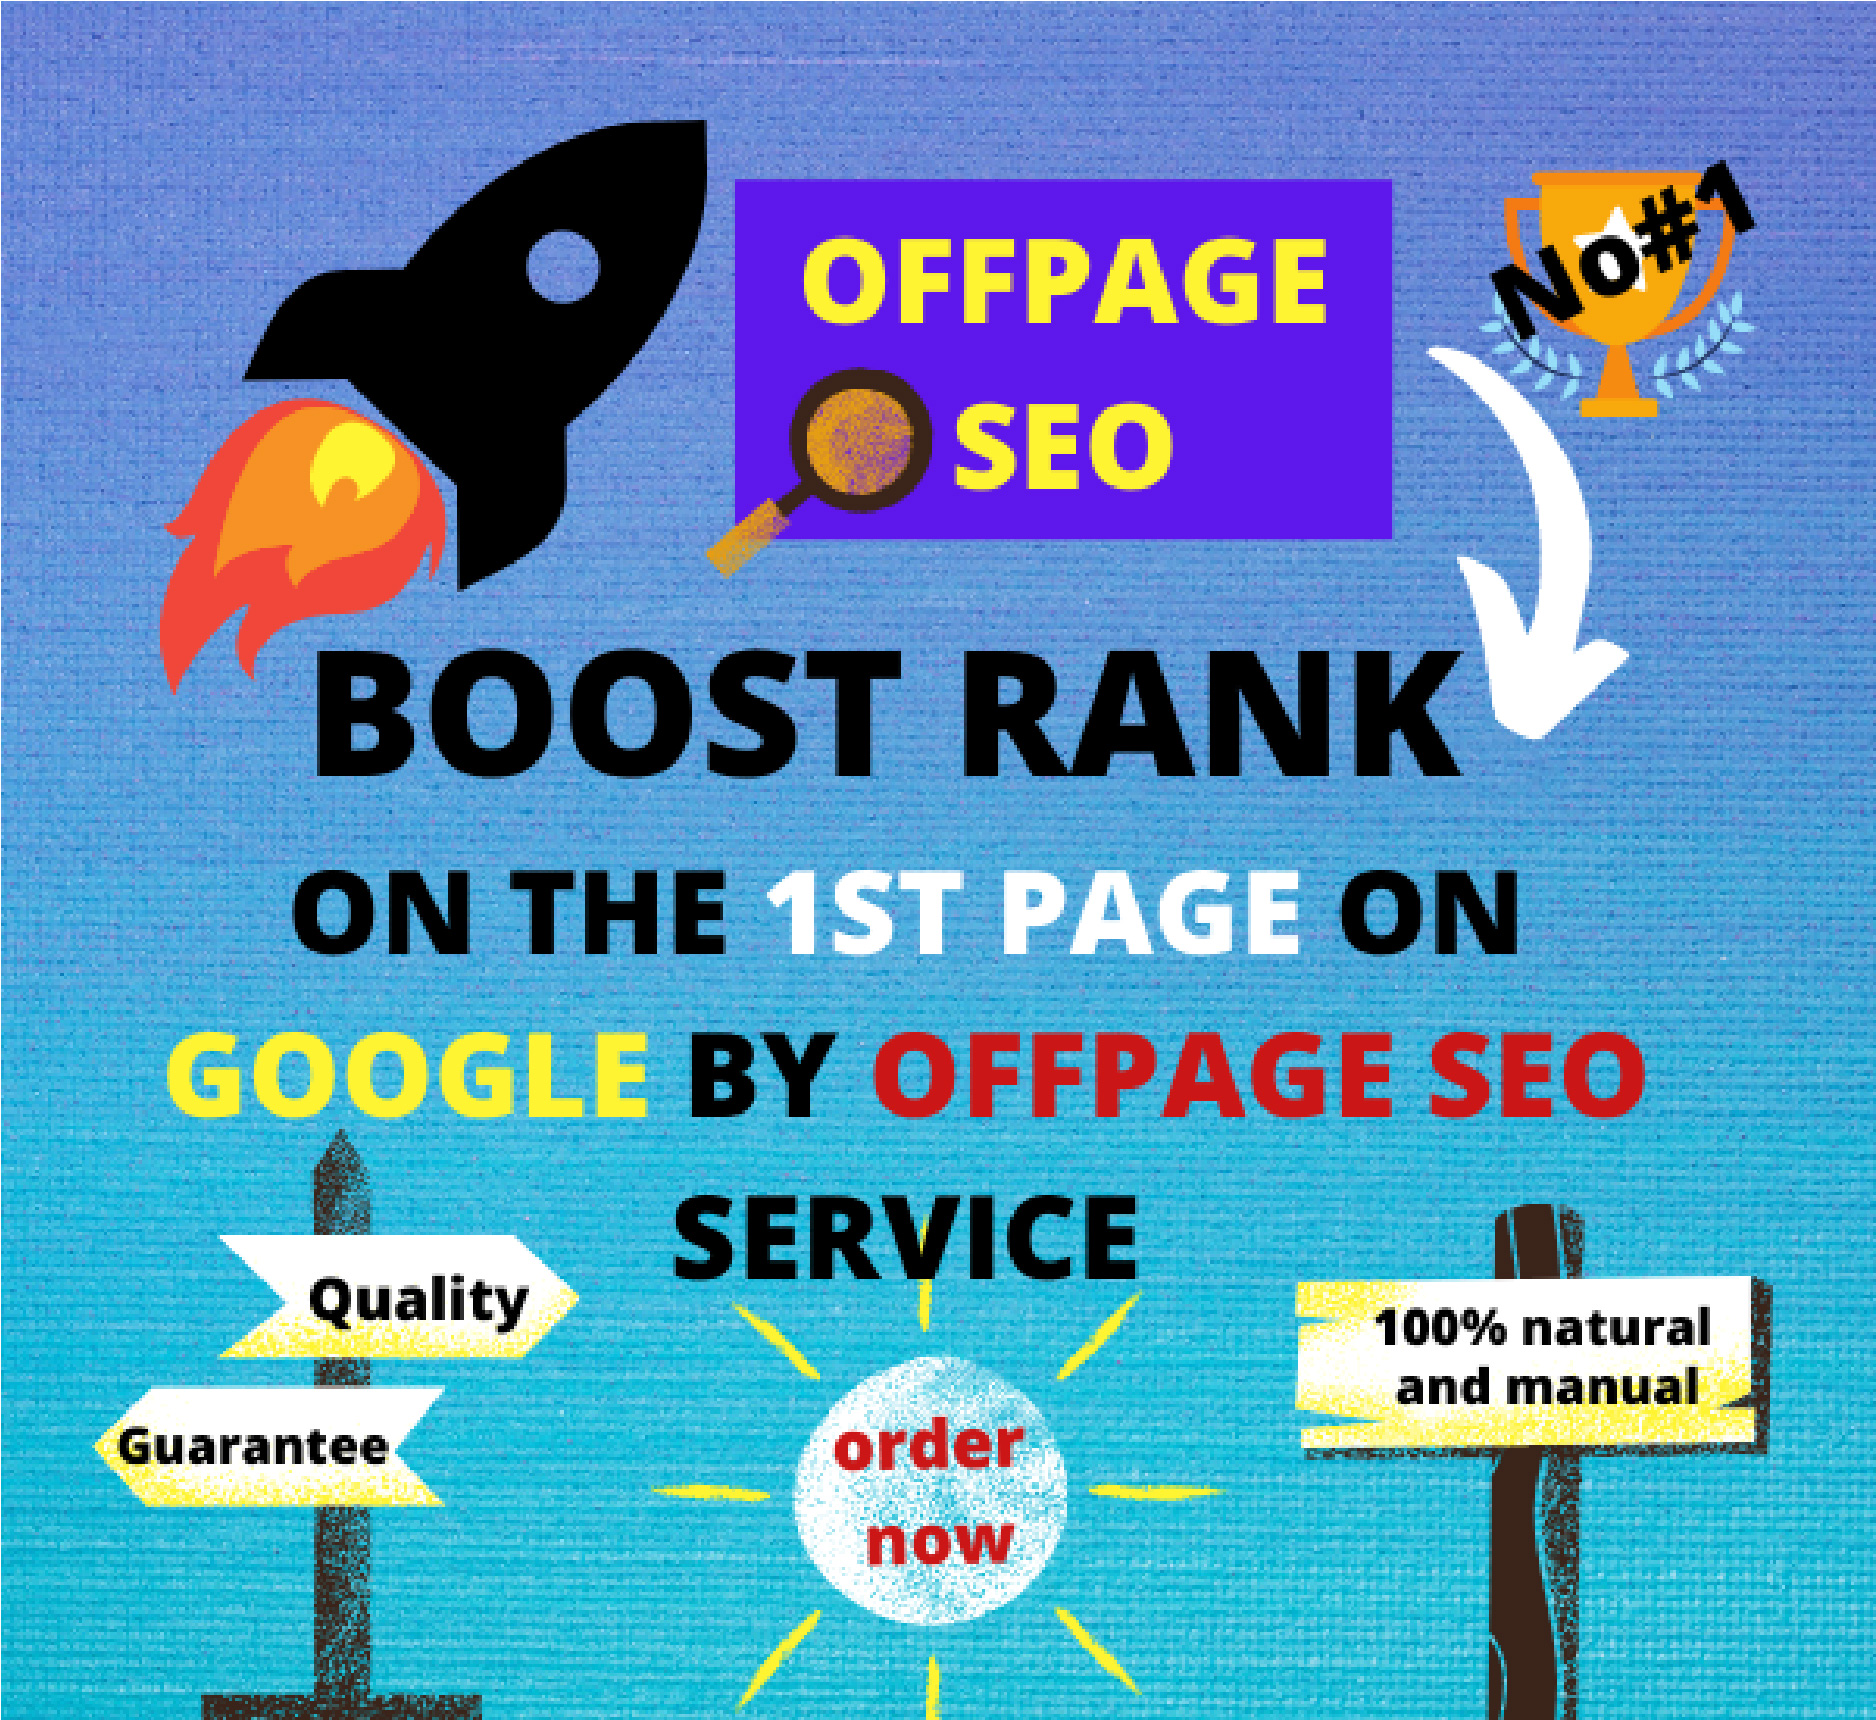 Boost your website by doing 50+ permanent natural mix backlinks and high-quality link building.